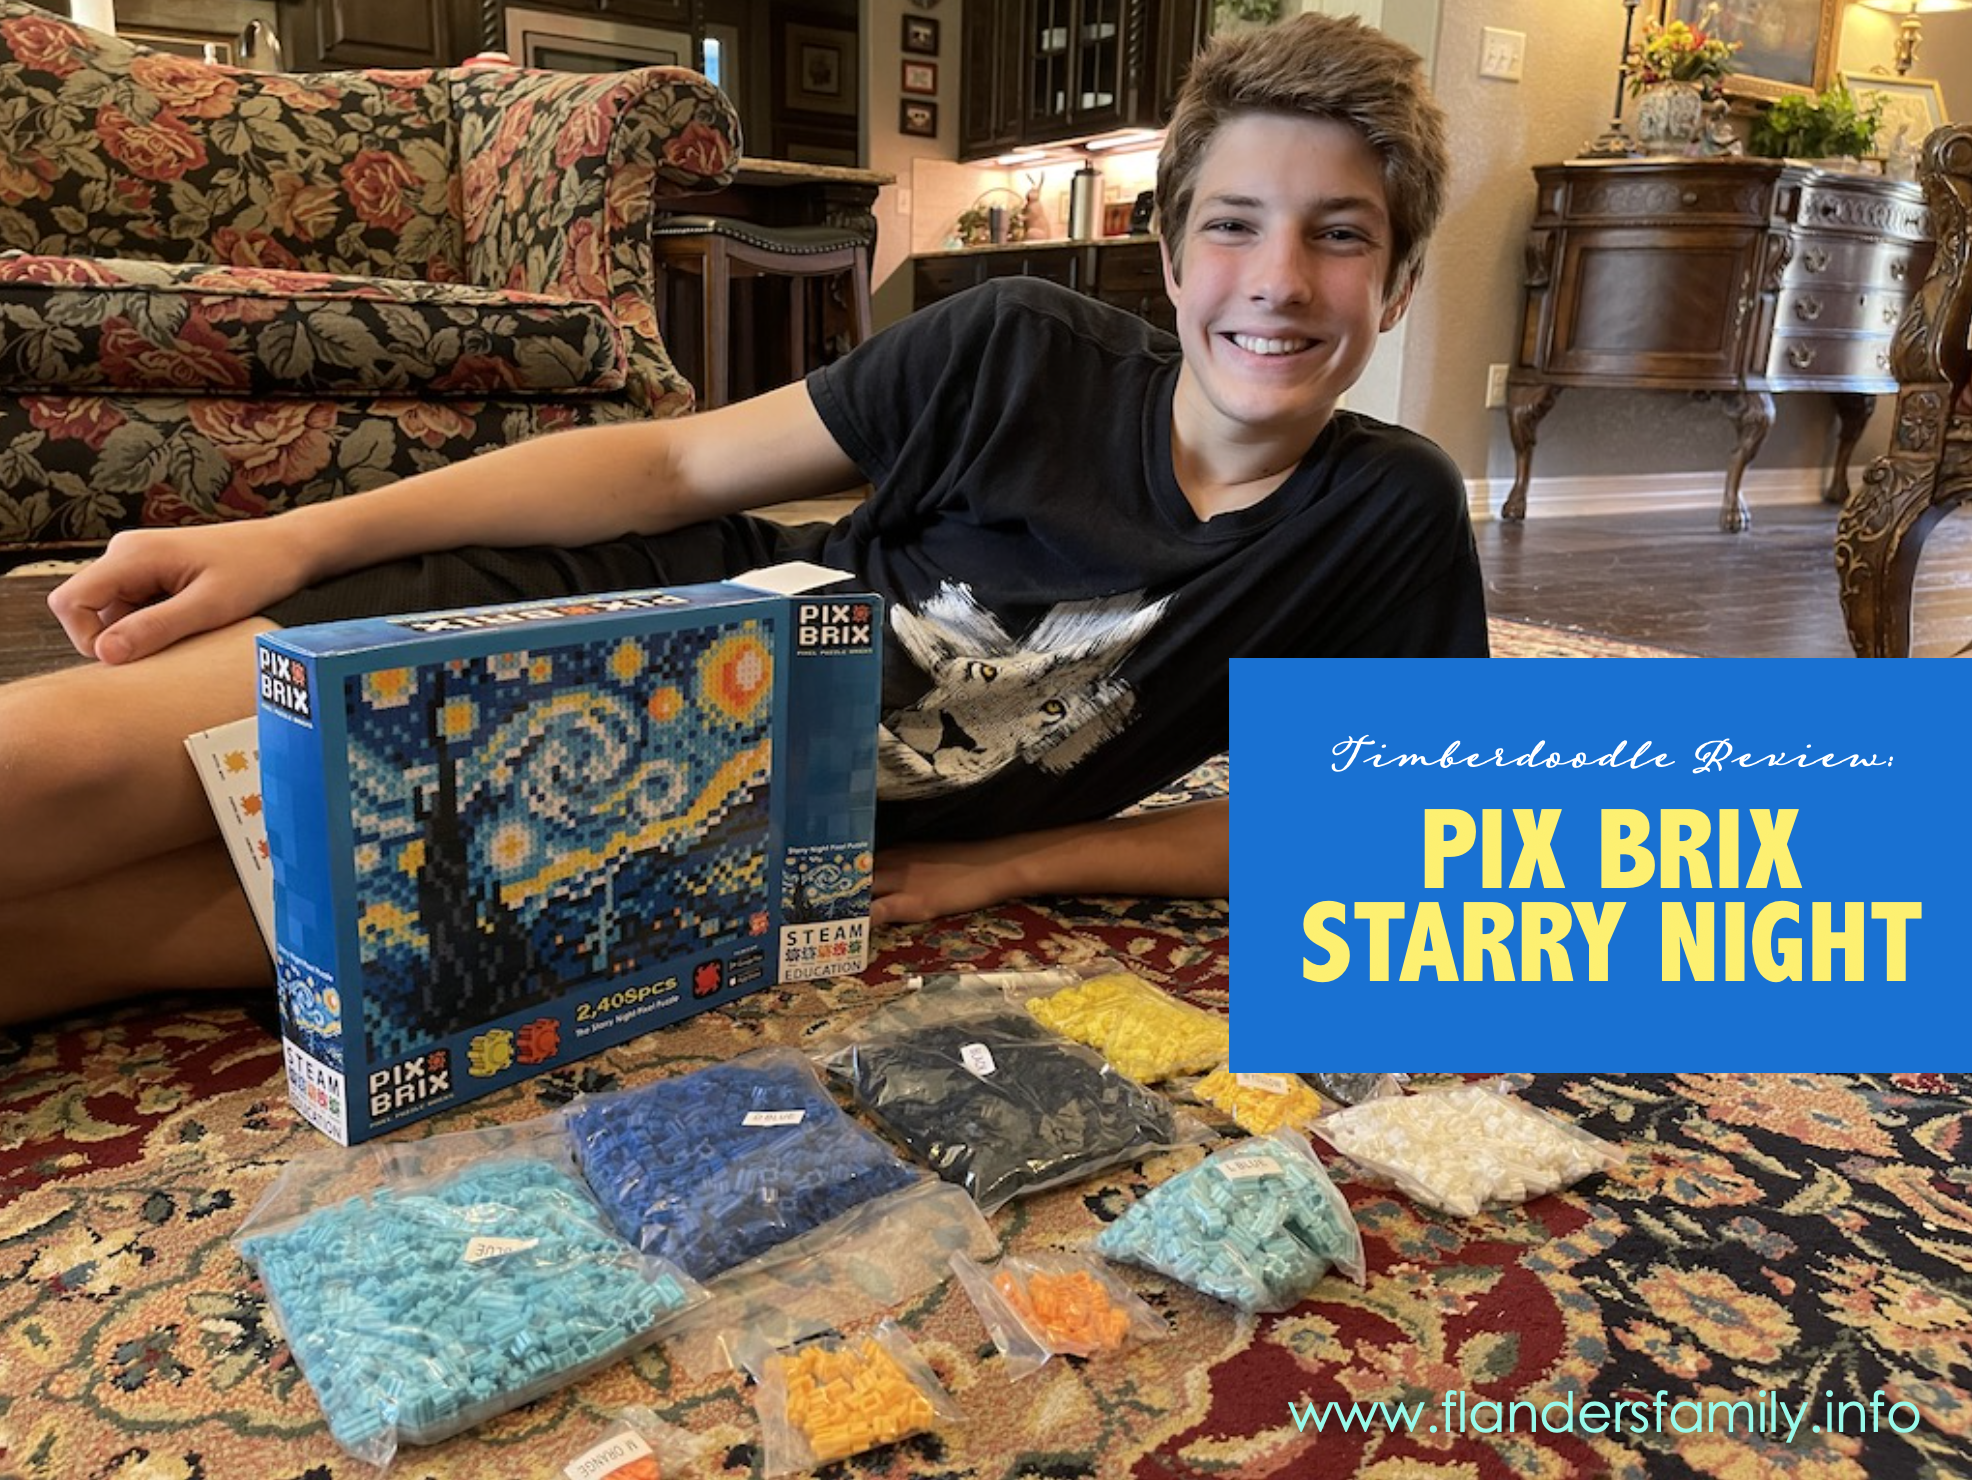 Pix Brix Starry Night Review